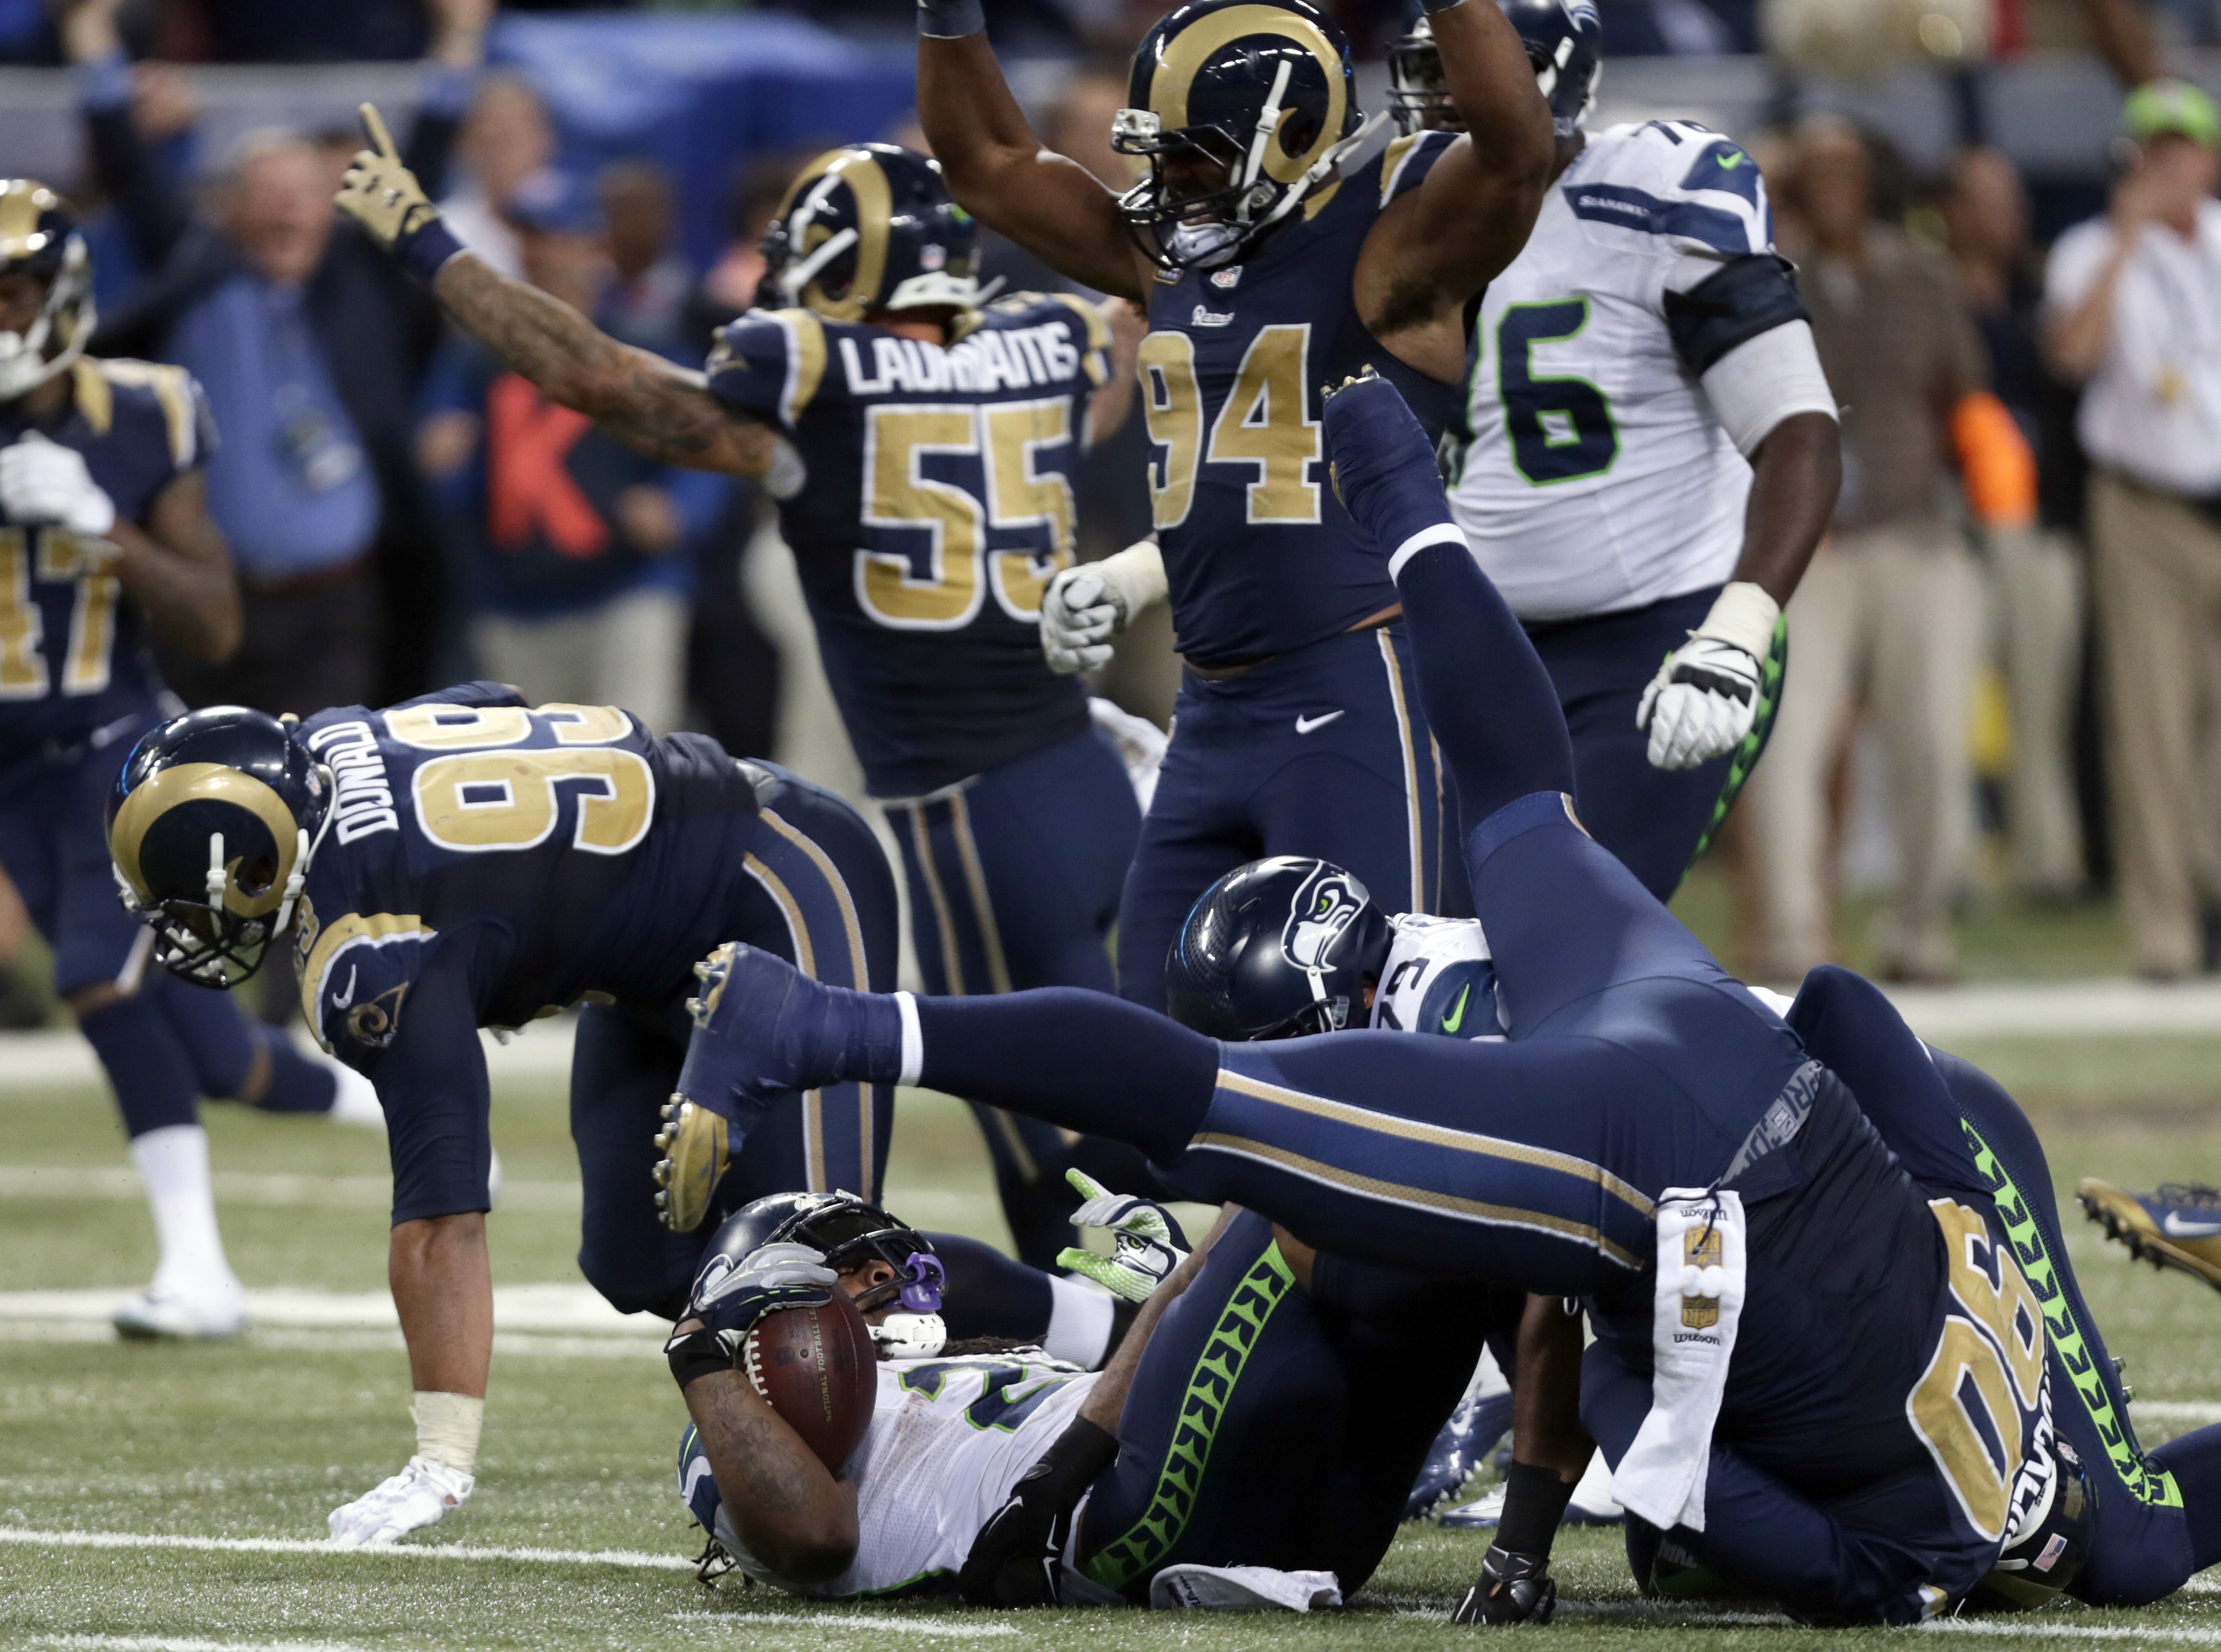 Seattle Seahawks running back Marshawn Lynch, bottom, lands on his back after being stopped on fourth down as St. Louis Rams players celebrate on the final play in overtime of an NFL football game Sunday, Sept. 13, 2015, in St. Louis. The Rams won 34-31.